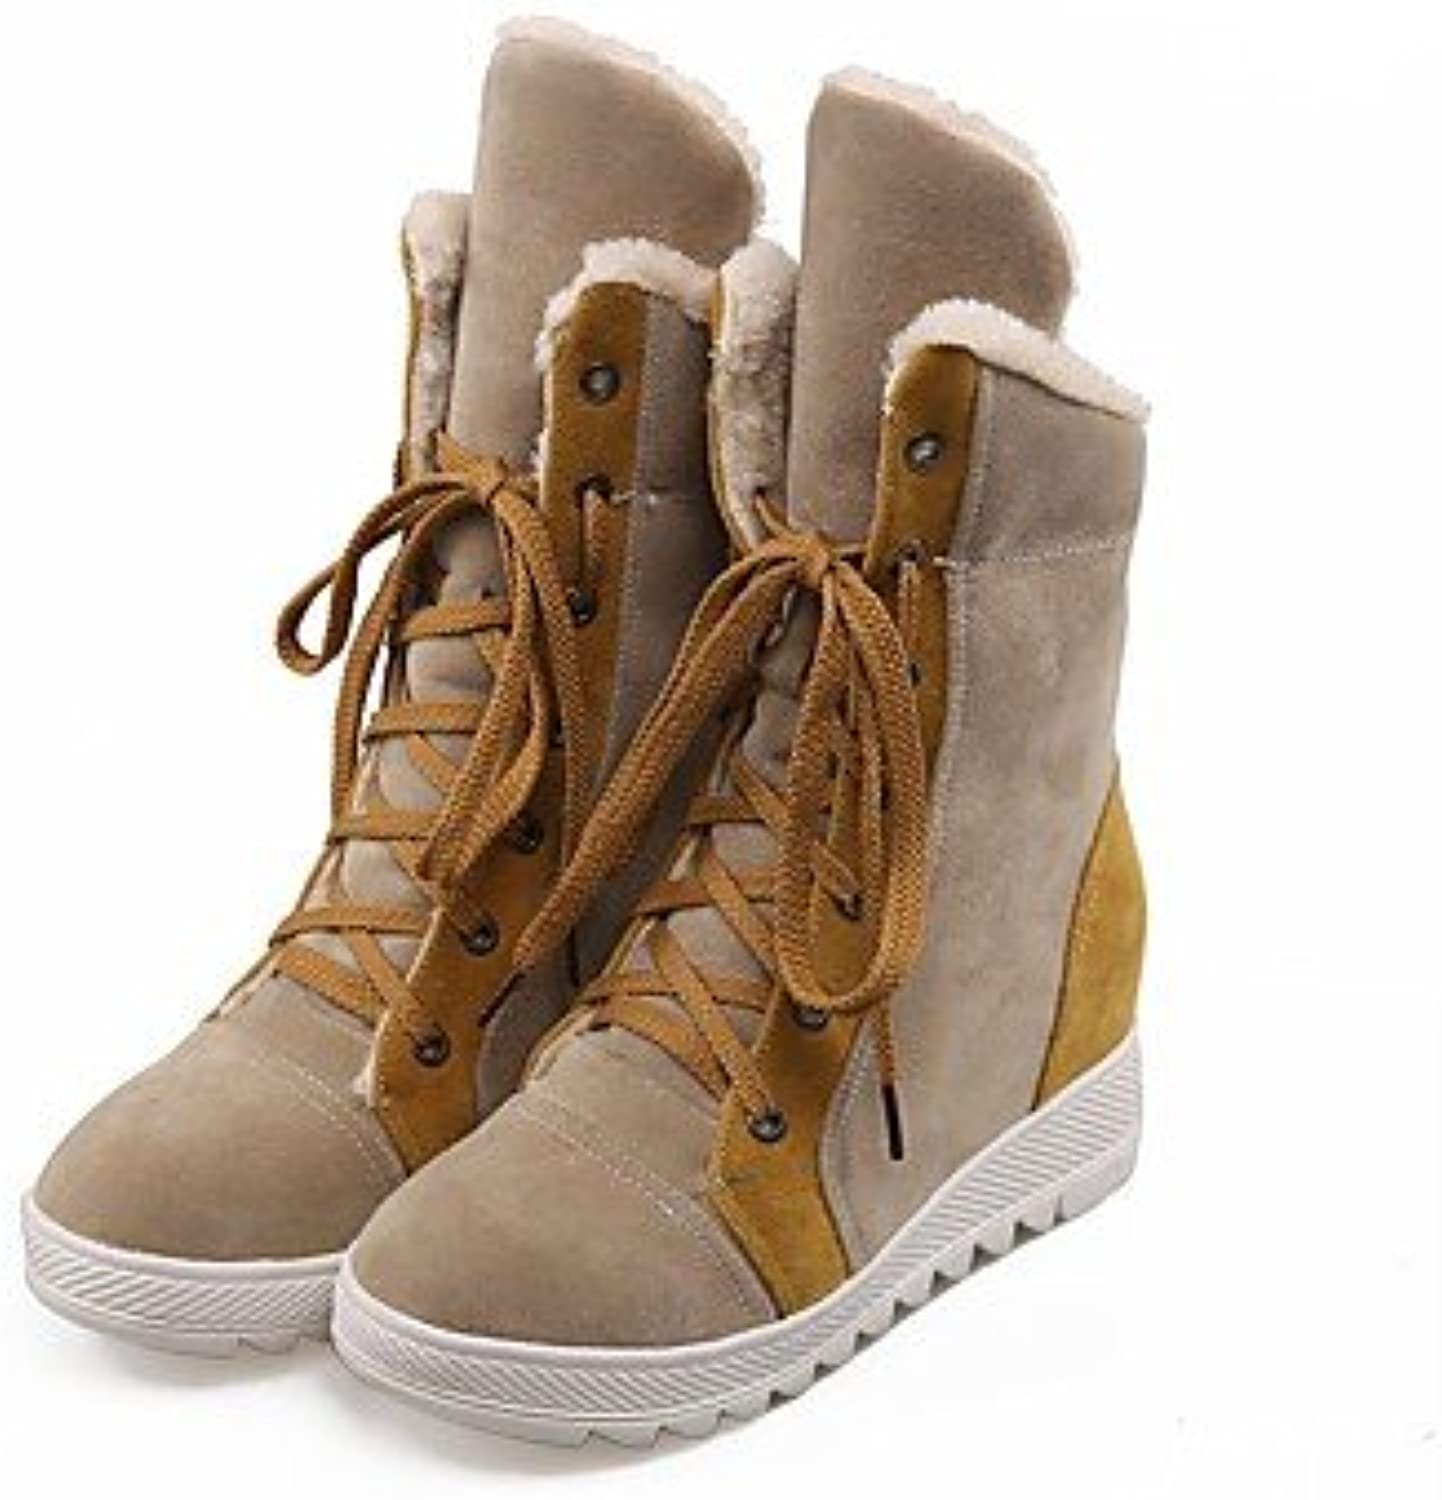 Women shoes Flocking Fall Winter Mary Jane Snow Flat Heel Round Toe Booties Ankle Lace-up for Casual Camel bluee Red